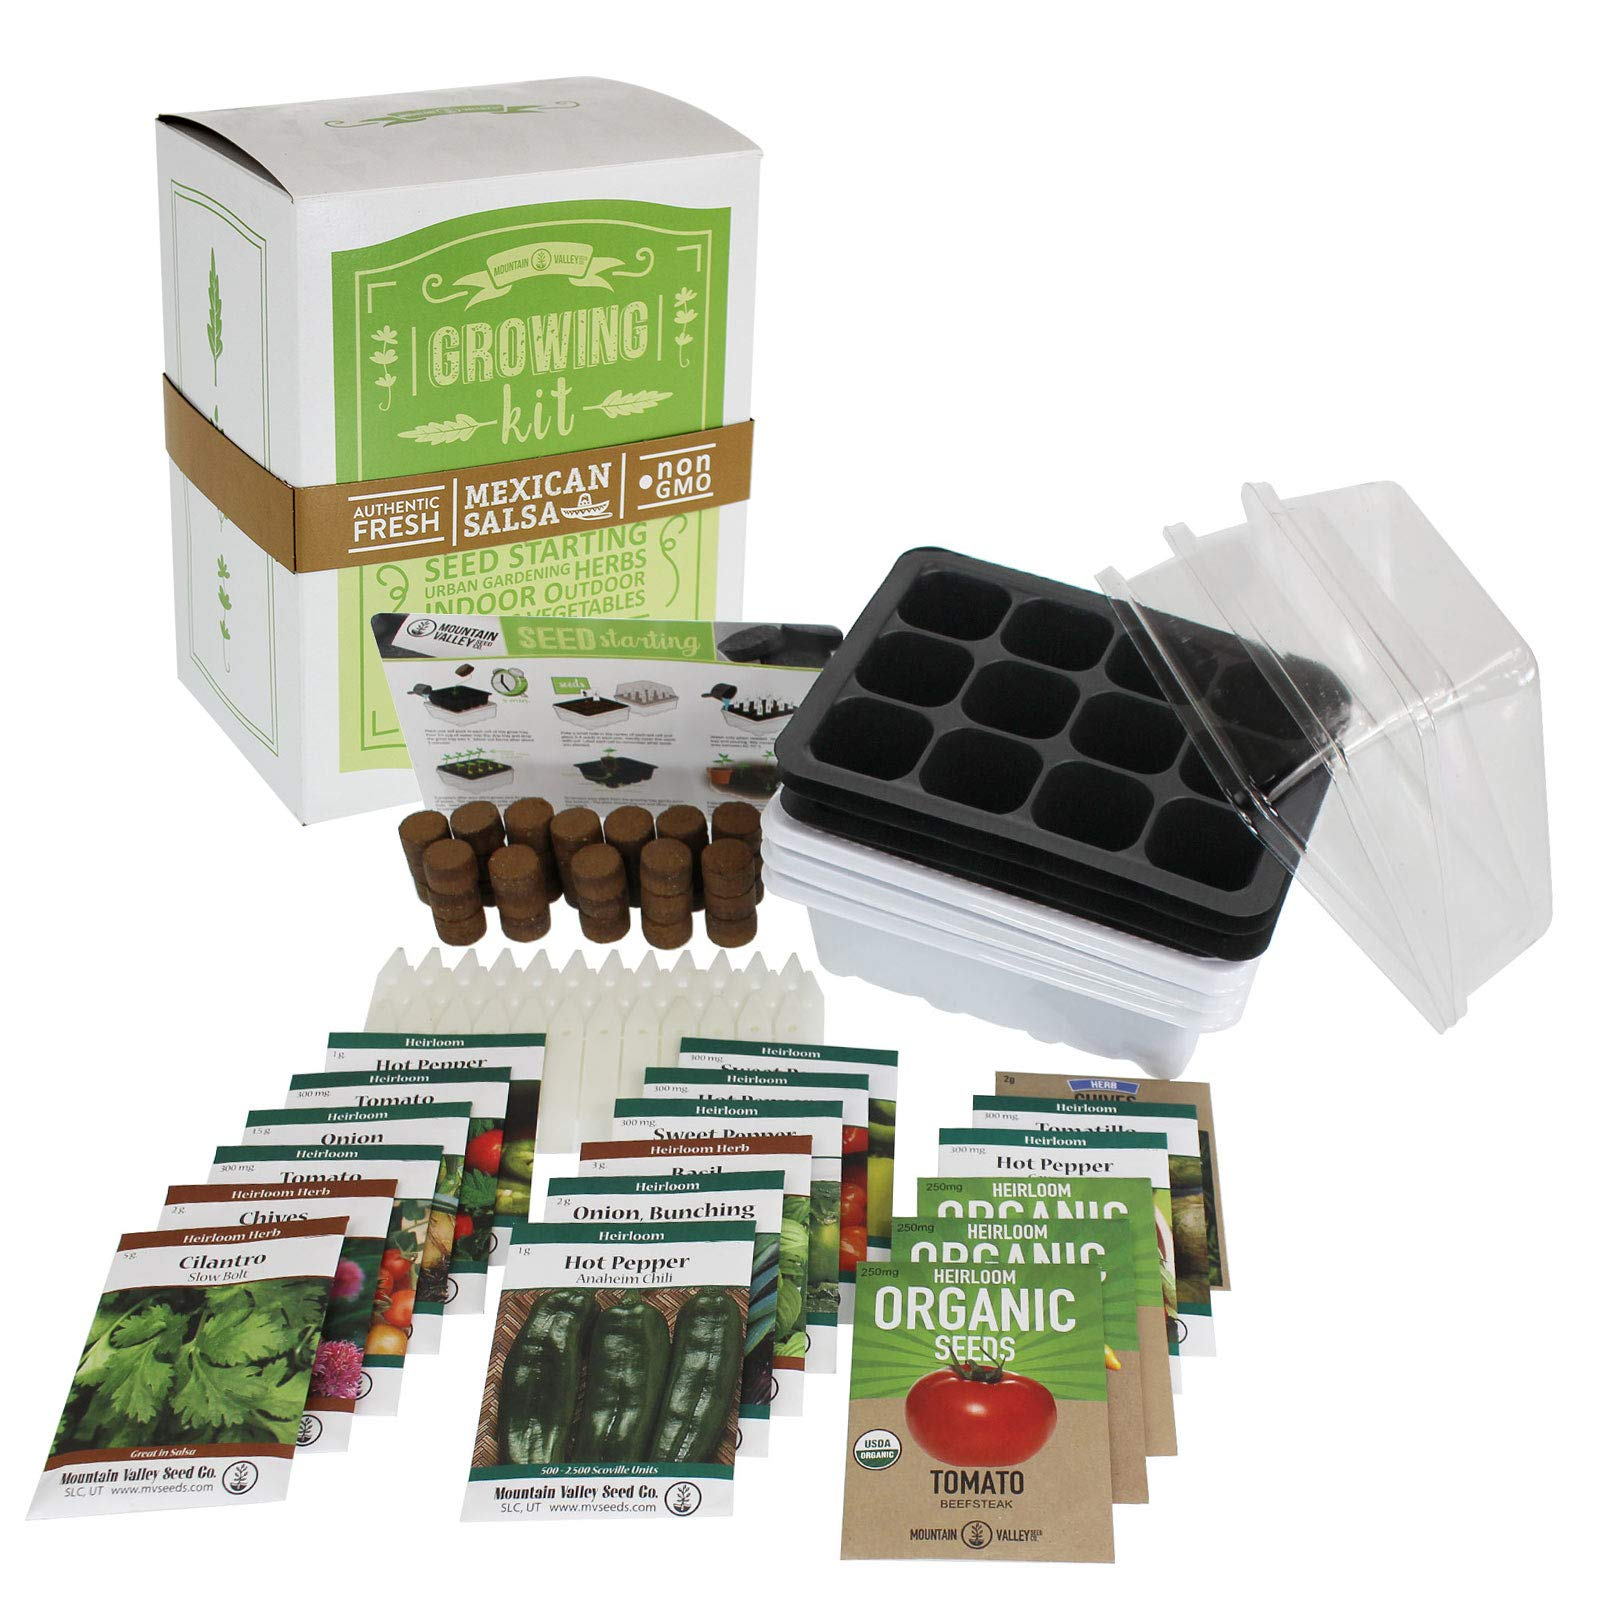 Salad & Vegetable Garden Seed Starter Kit | Premium Kit | 18 Non-GMO Varieties | Gardening Starter Kit | Seeds: Onion, Swiss Chard, Broccoli, Snap Pea, Spinach, Lettuce, Tomato & More by Mountain Valley Seed Company (Image #1)